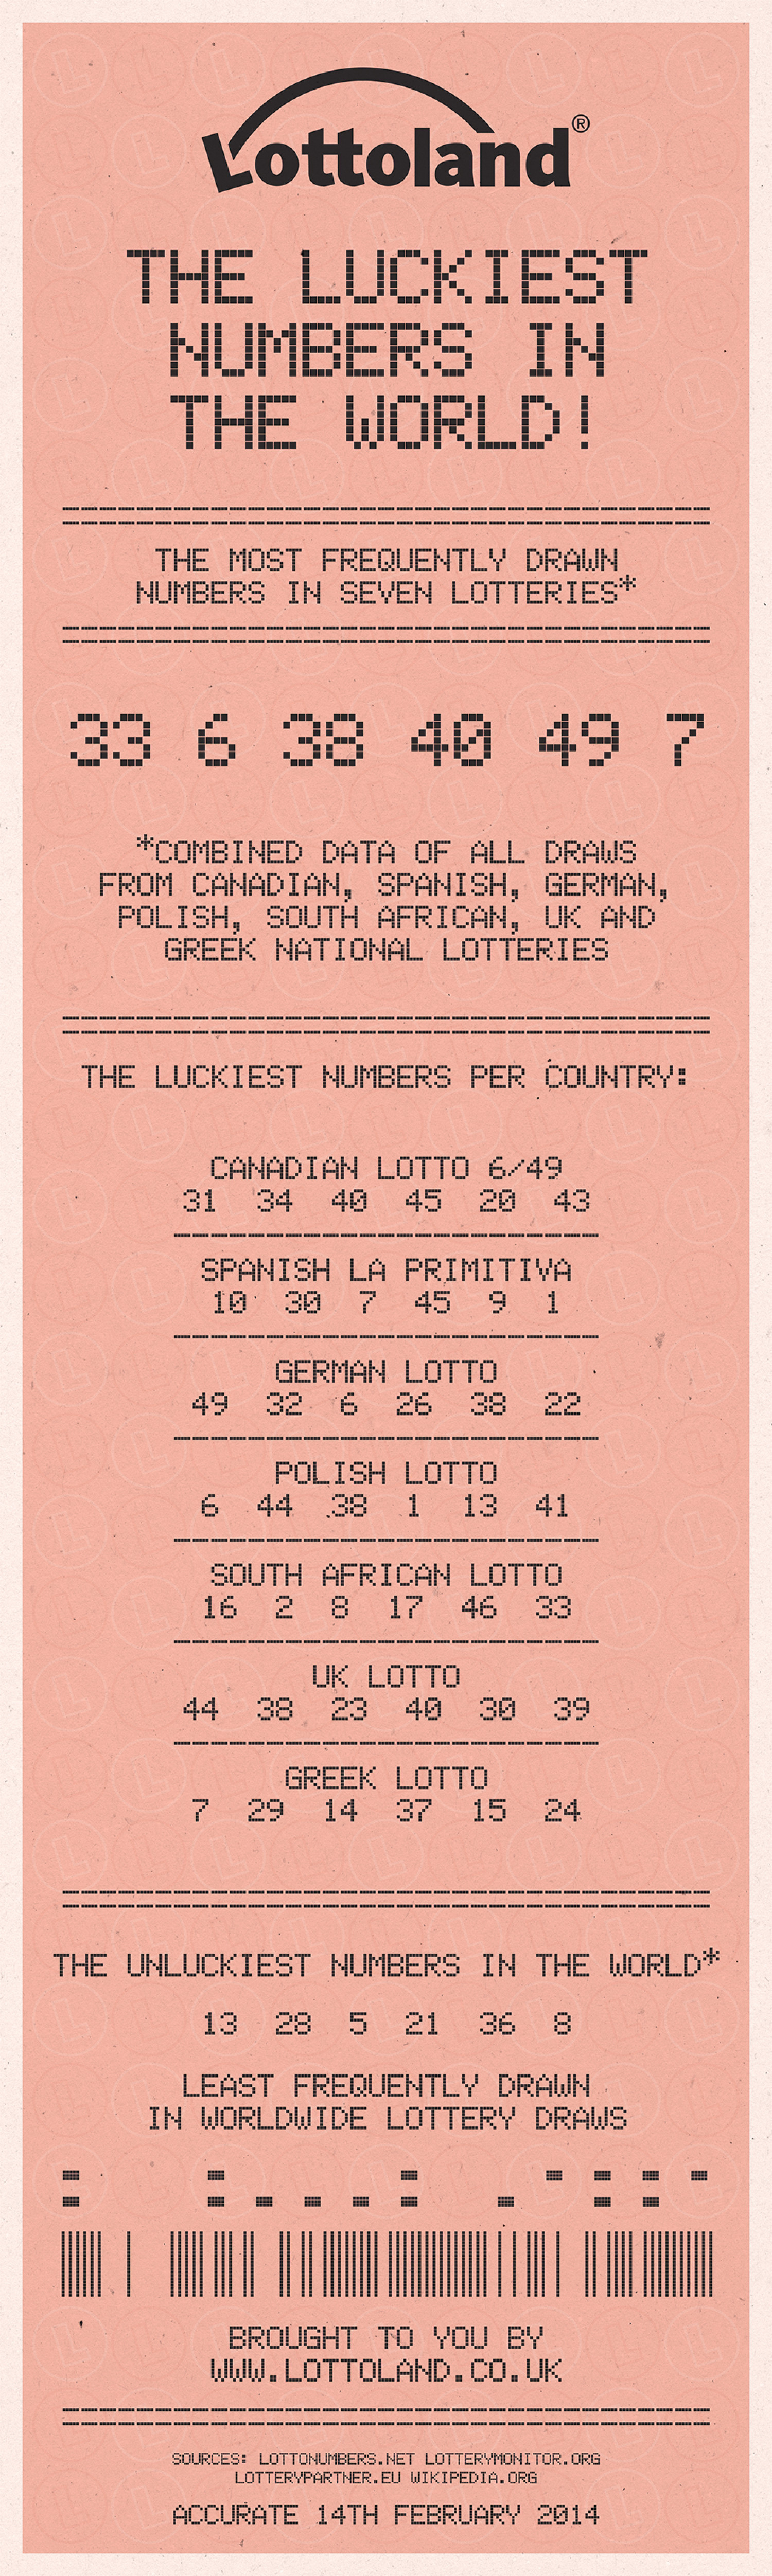 The Luckiest Numbers in the World Infographic